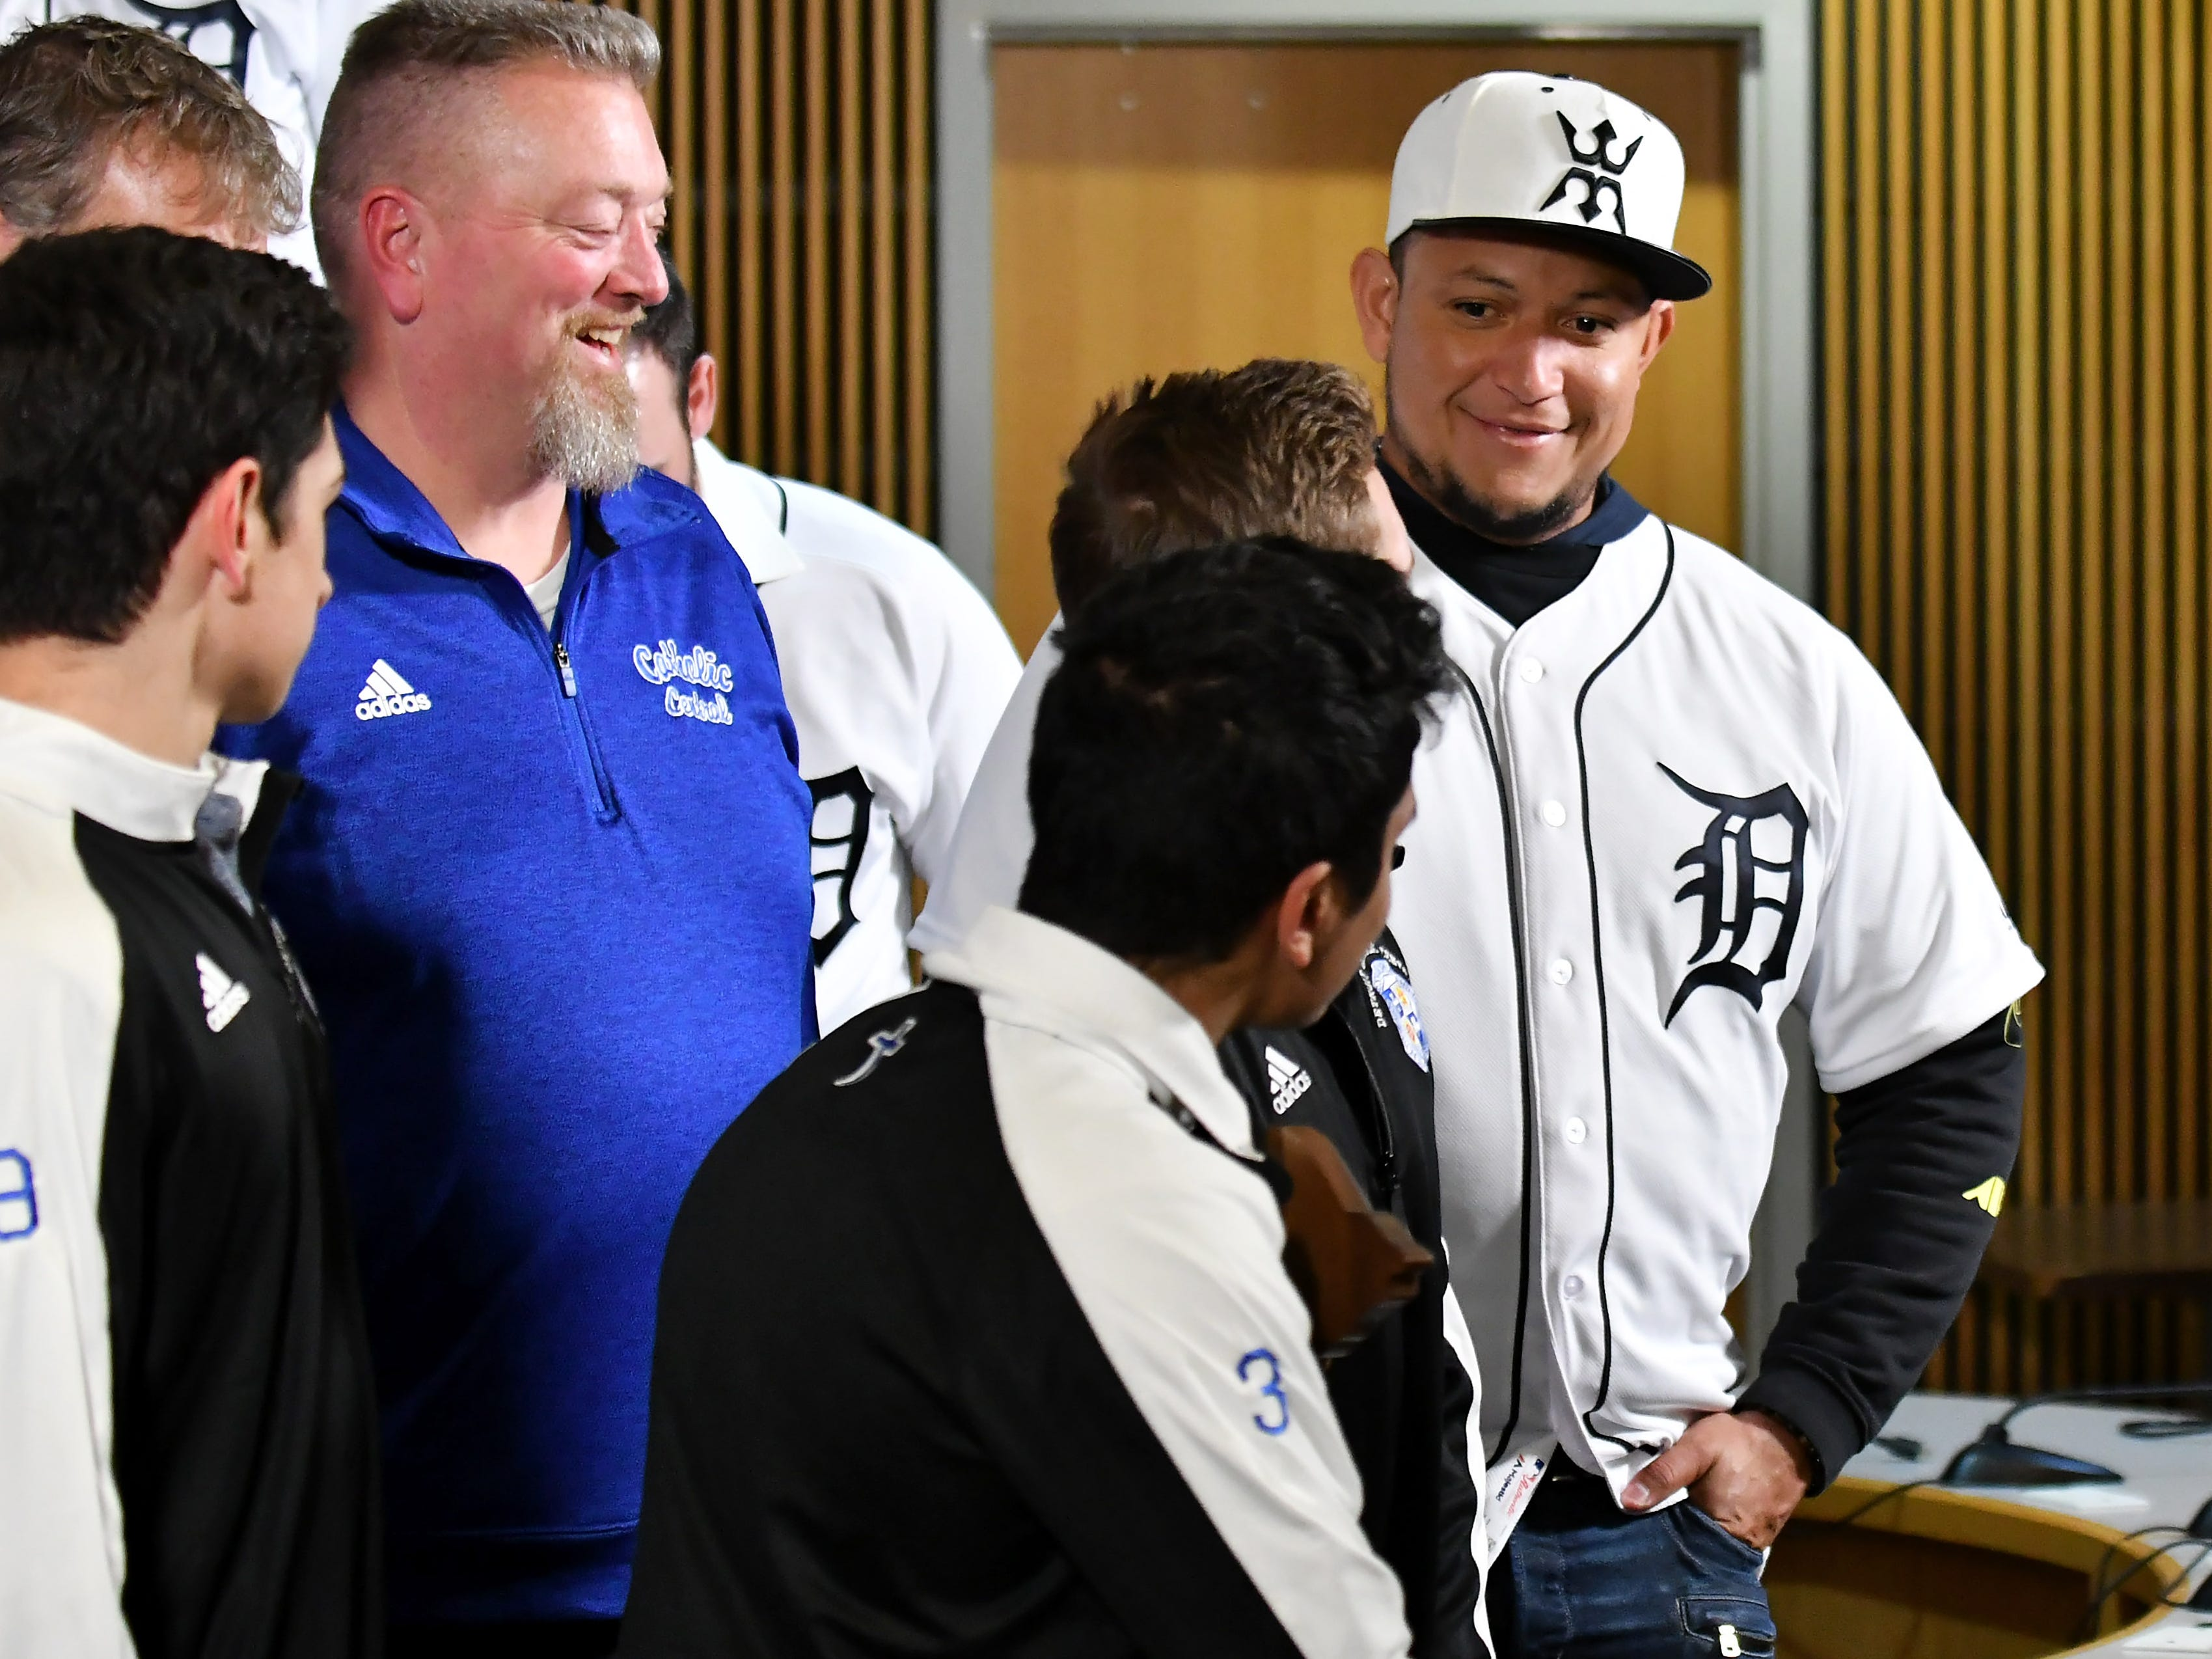 Tigers' Miguel Cabrera jokes around with one of the members of the Div. 1 champion Novi soccer players, Ryan Pierson, after they take a group photo during a stop on the 2019 Detroit Tigers Winter Caravan at the Novi Civic Center in Novi, Mich. on Jan. 24, 2019.